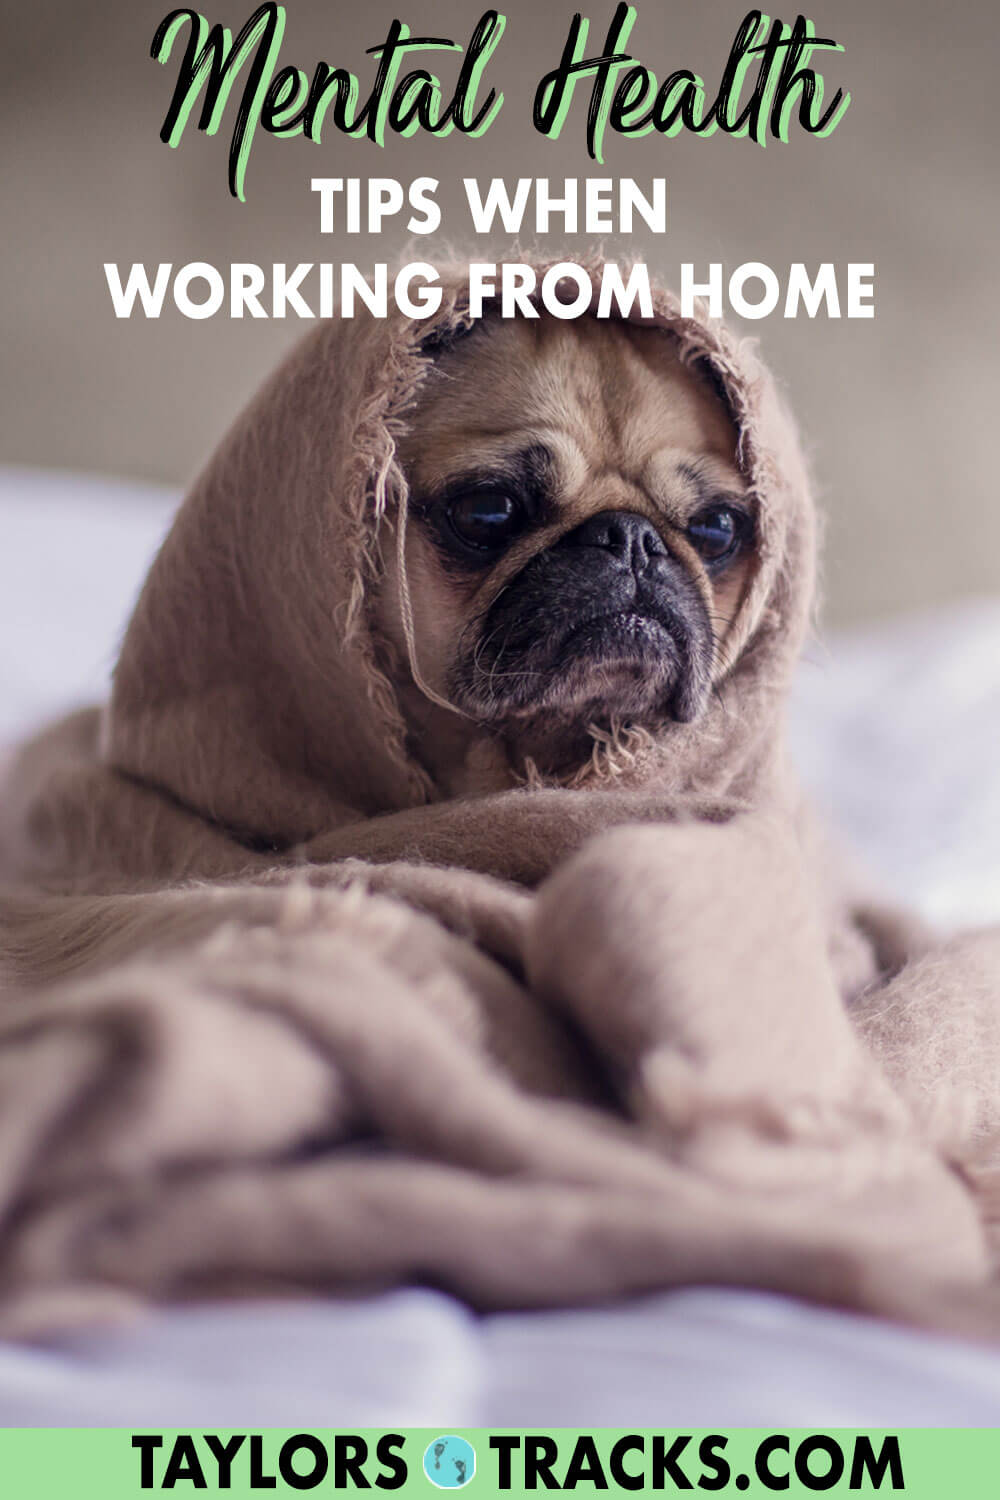 Get working from home tips that are actually useful but also super simple to help you keep your sanity while also being productive. These top work from home tips focus on your mental health just as much as they do your efficiency. Click to find out what they are!